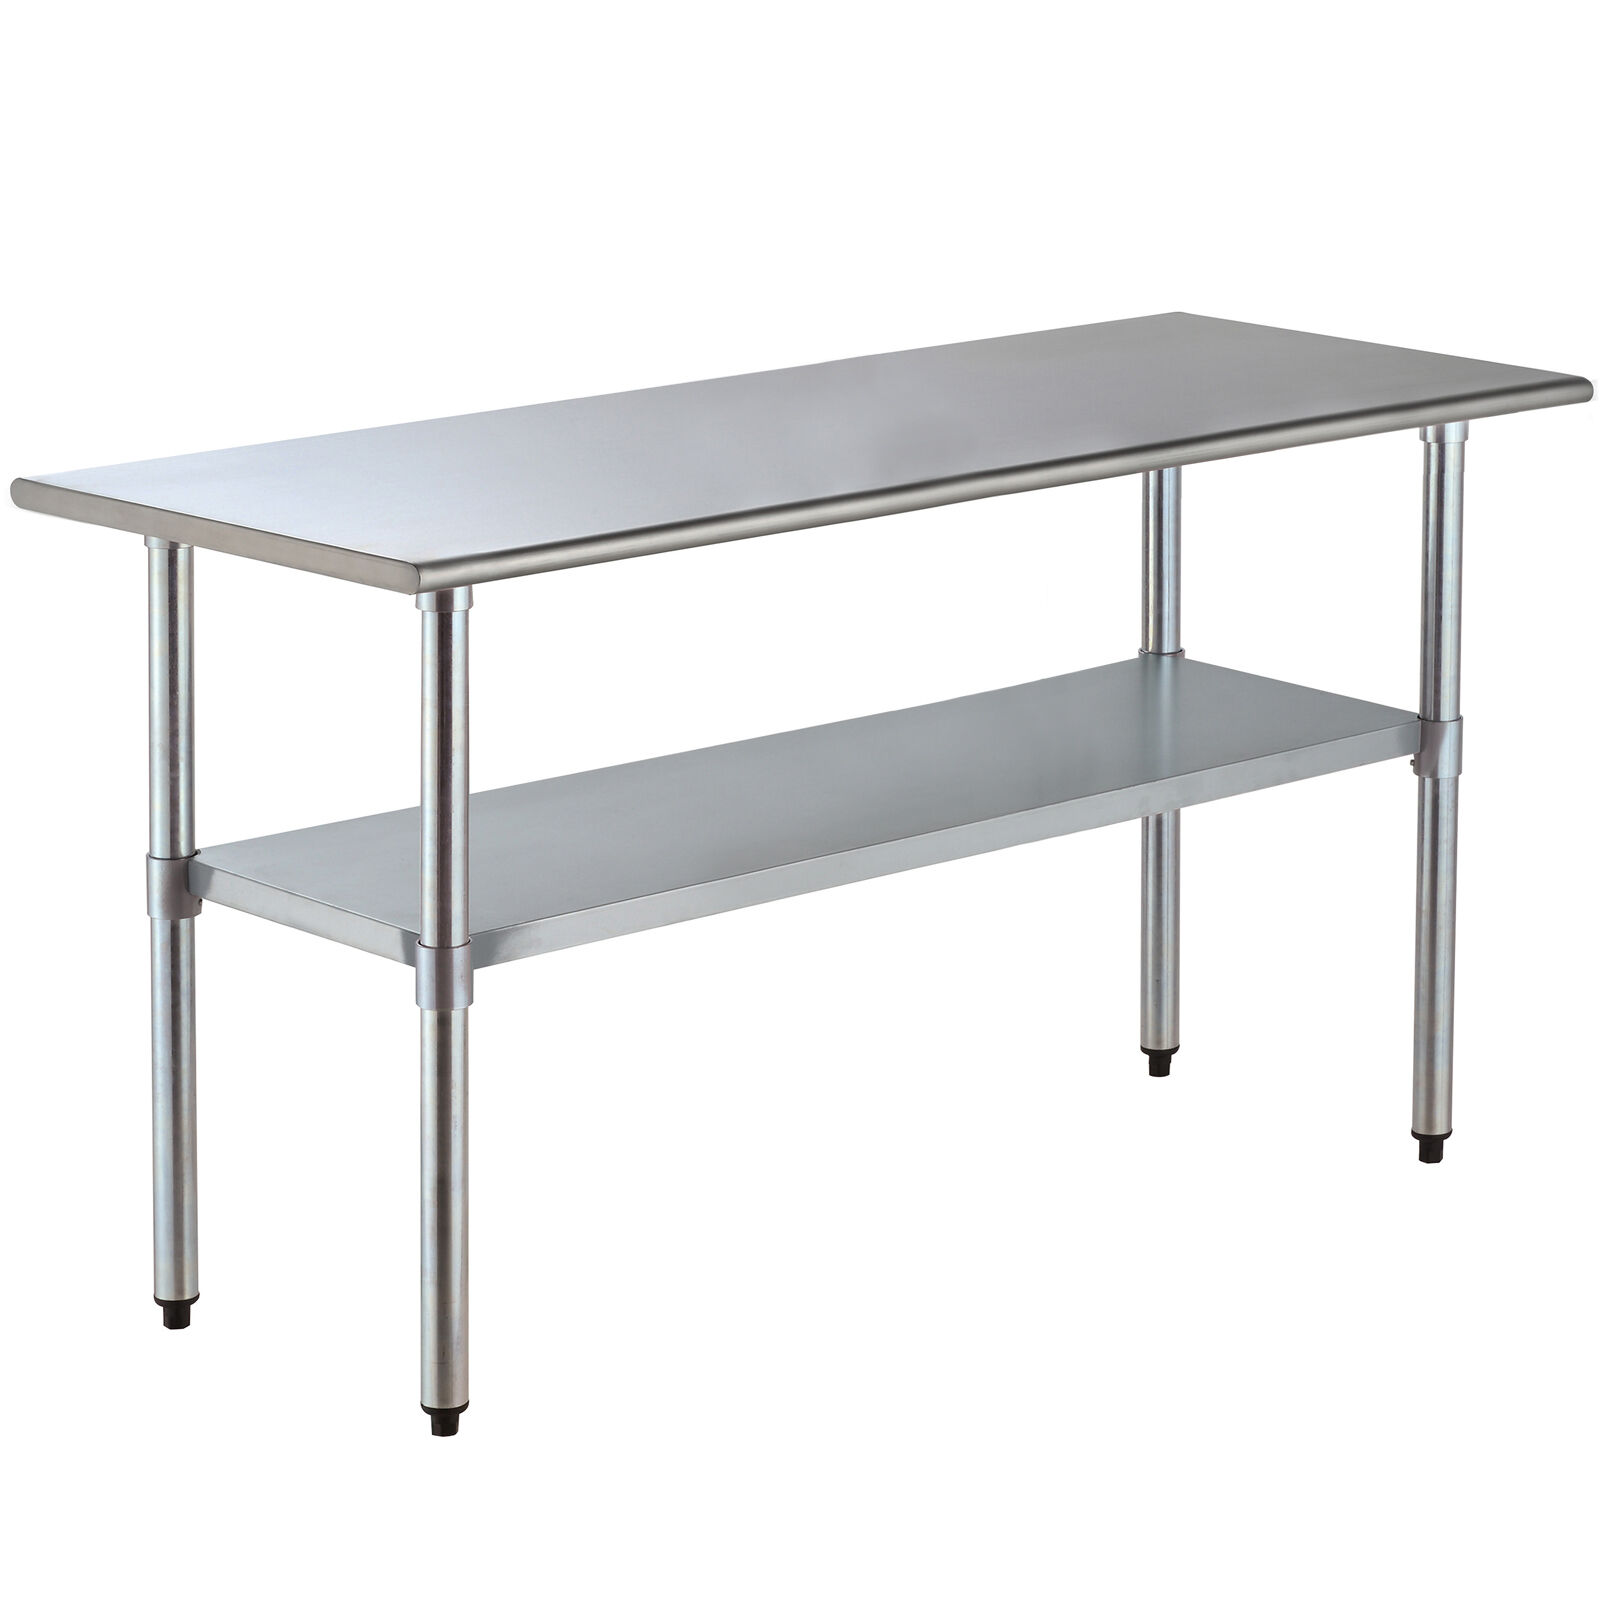 "Stainless Steel Kitchen Work Table: 30"" X 72"" Stainless Steel Commercial Kitchen Restaurant"